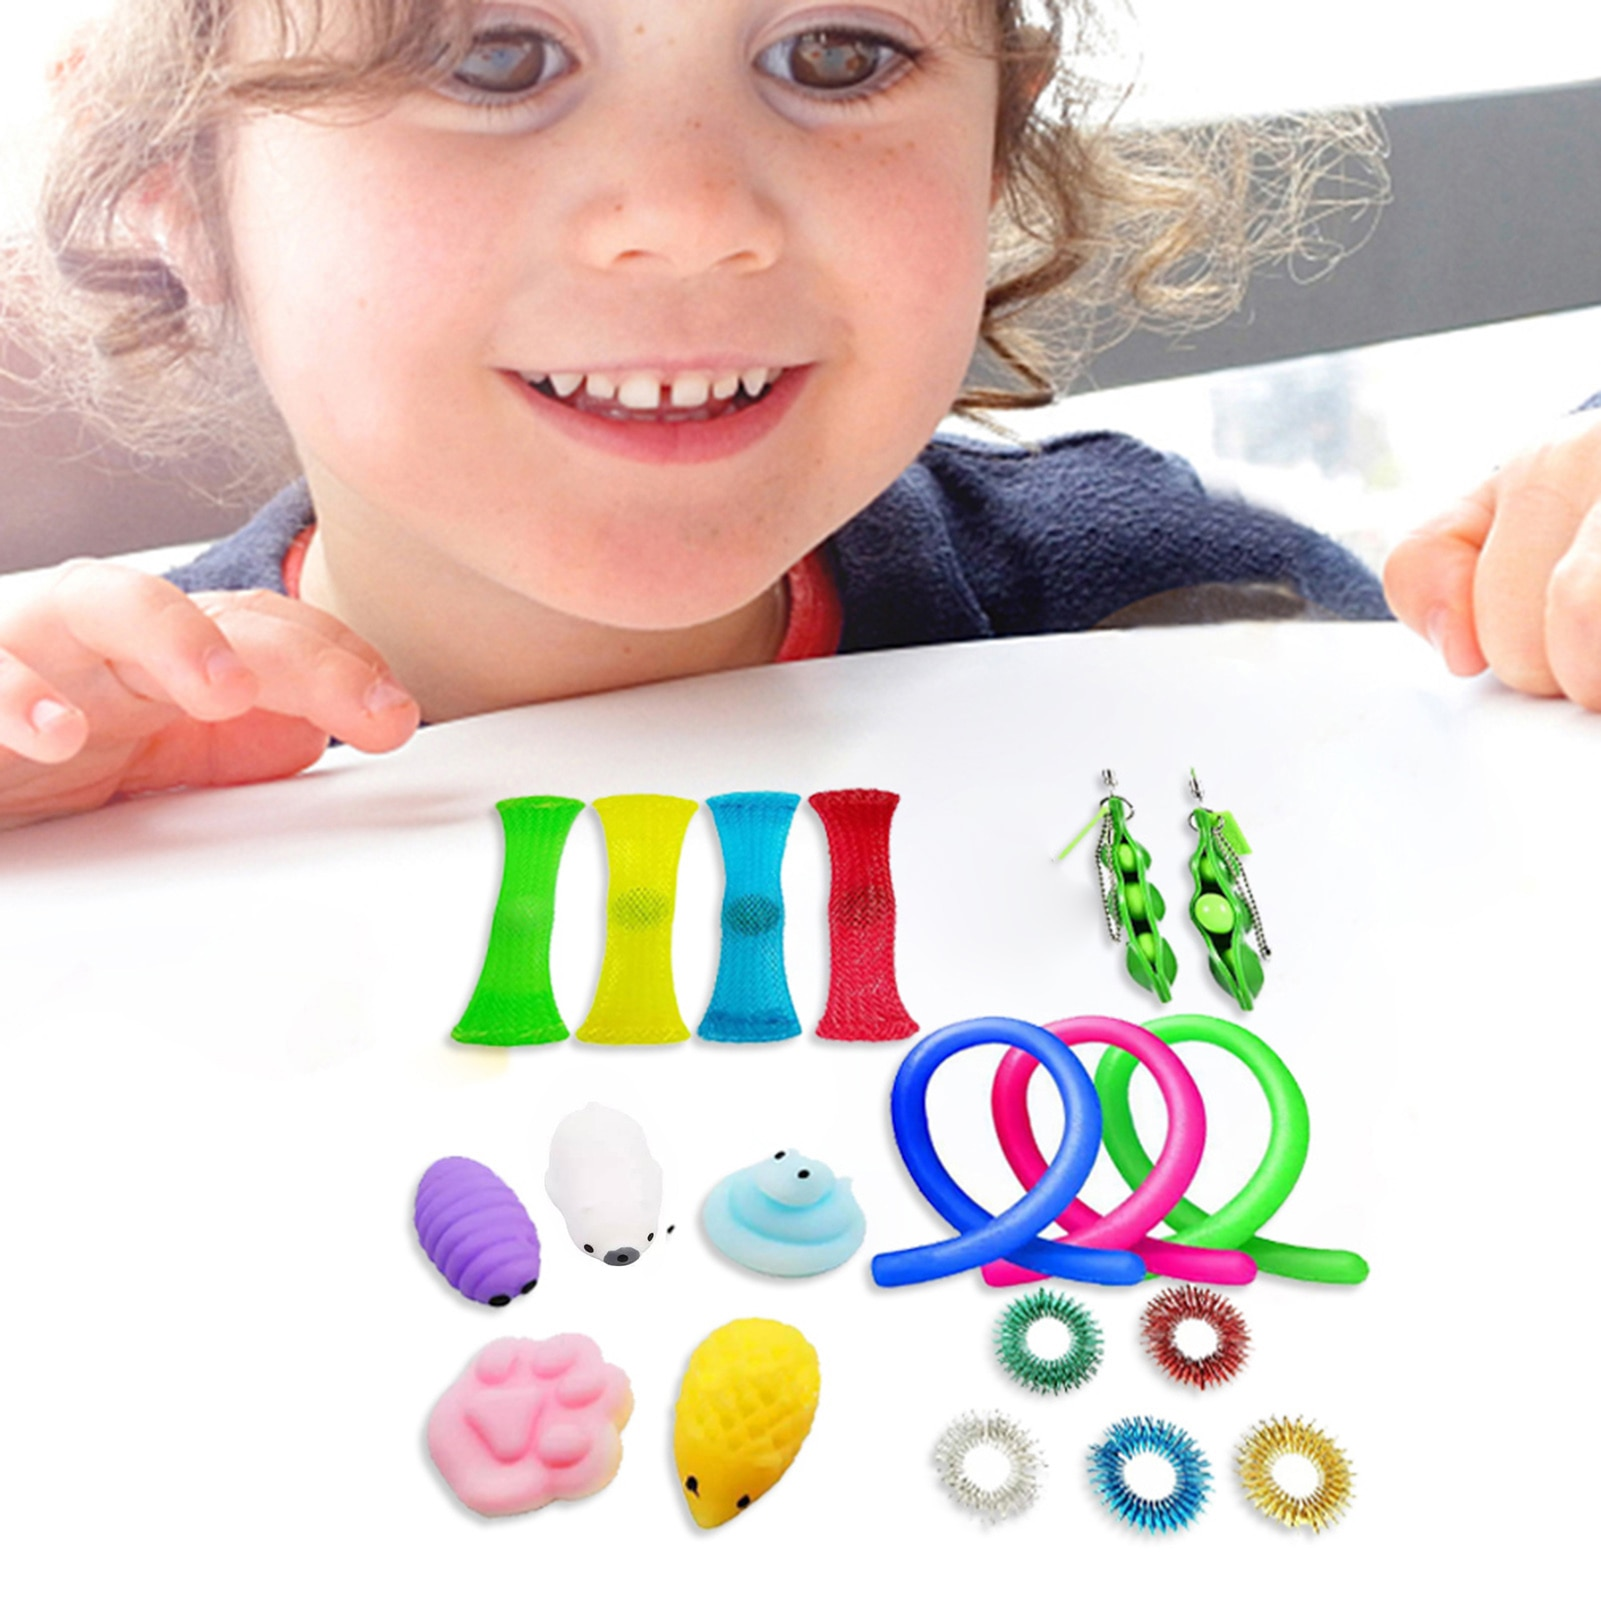 20pcs Sensory Toy Set Anti Stress Toy Set Relief Stress Sensory Anxiety Stress Relief Toy Set Fidget Toys For Kids Adult enlarge